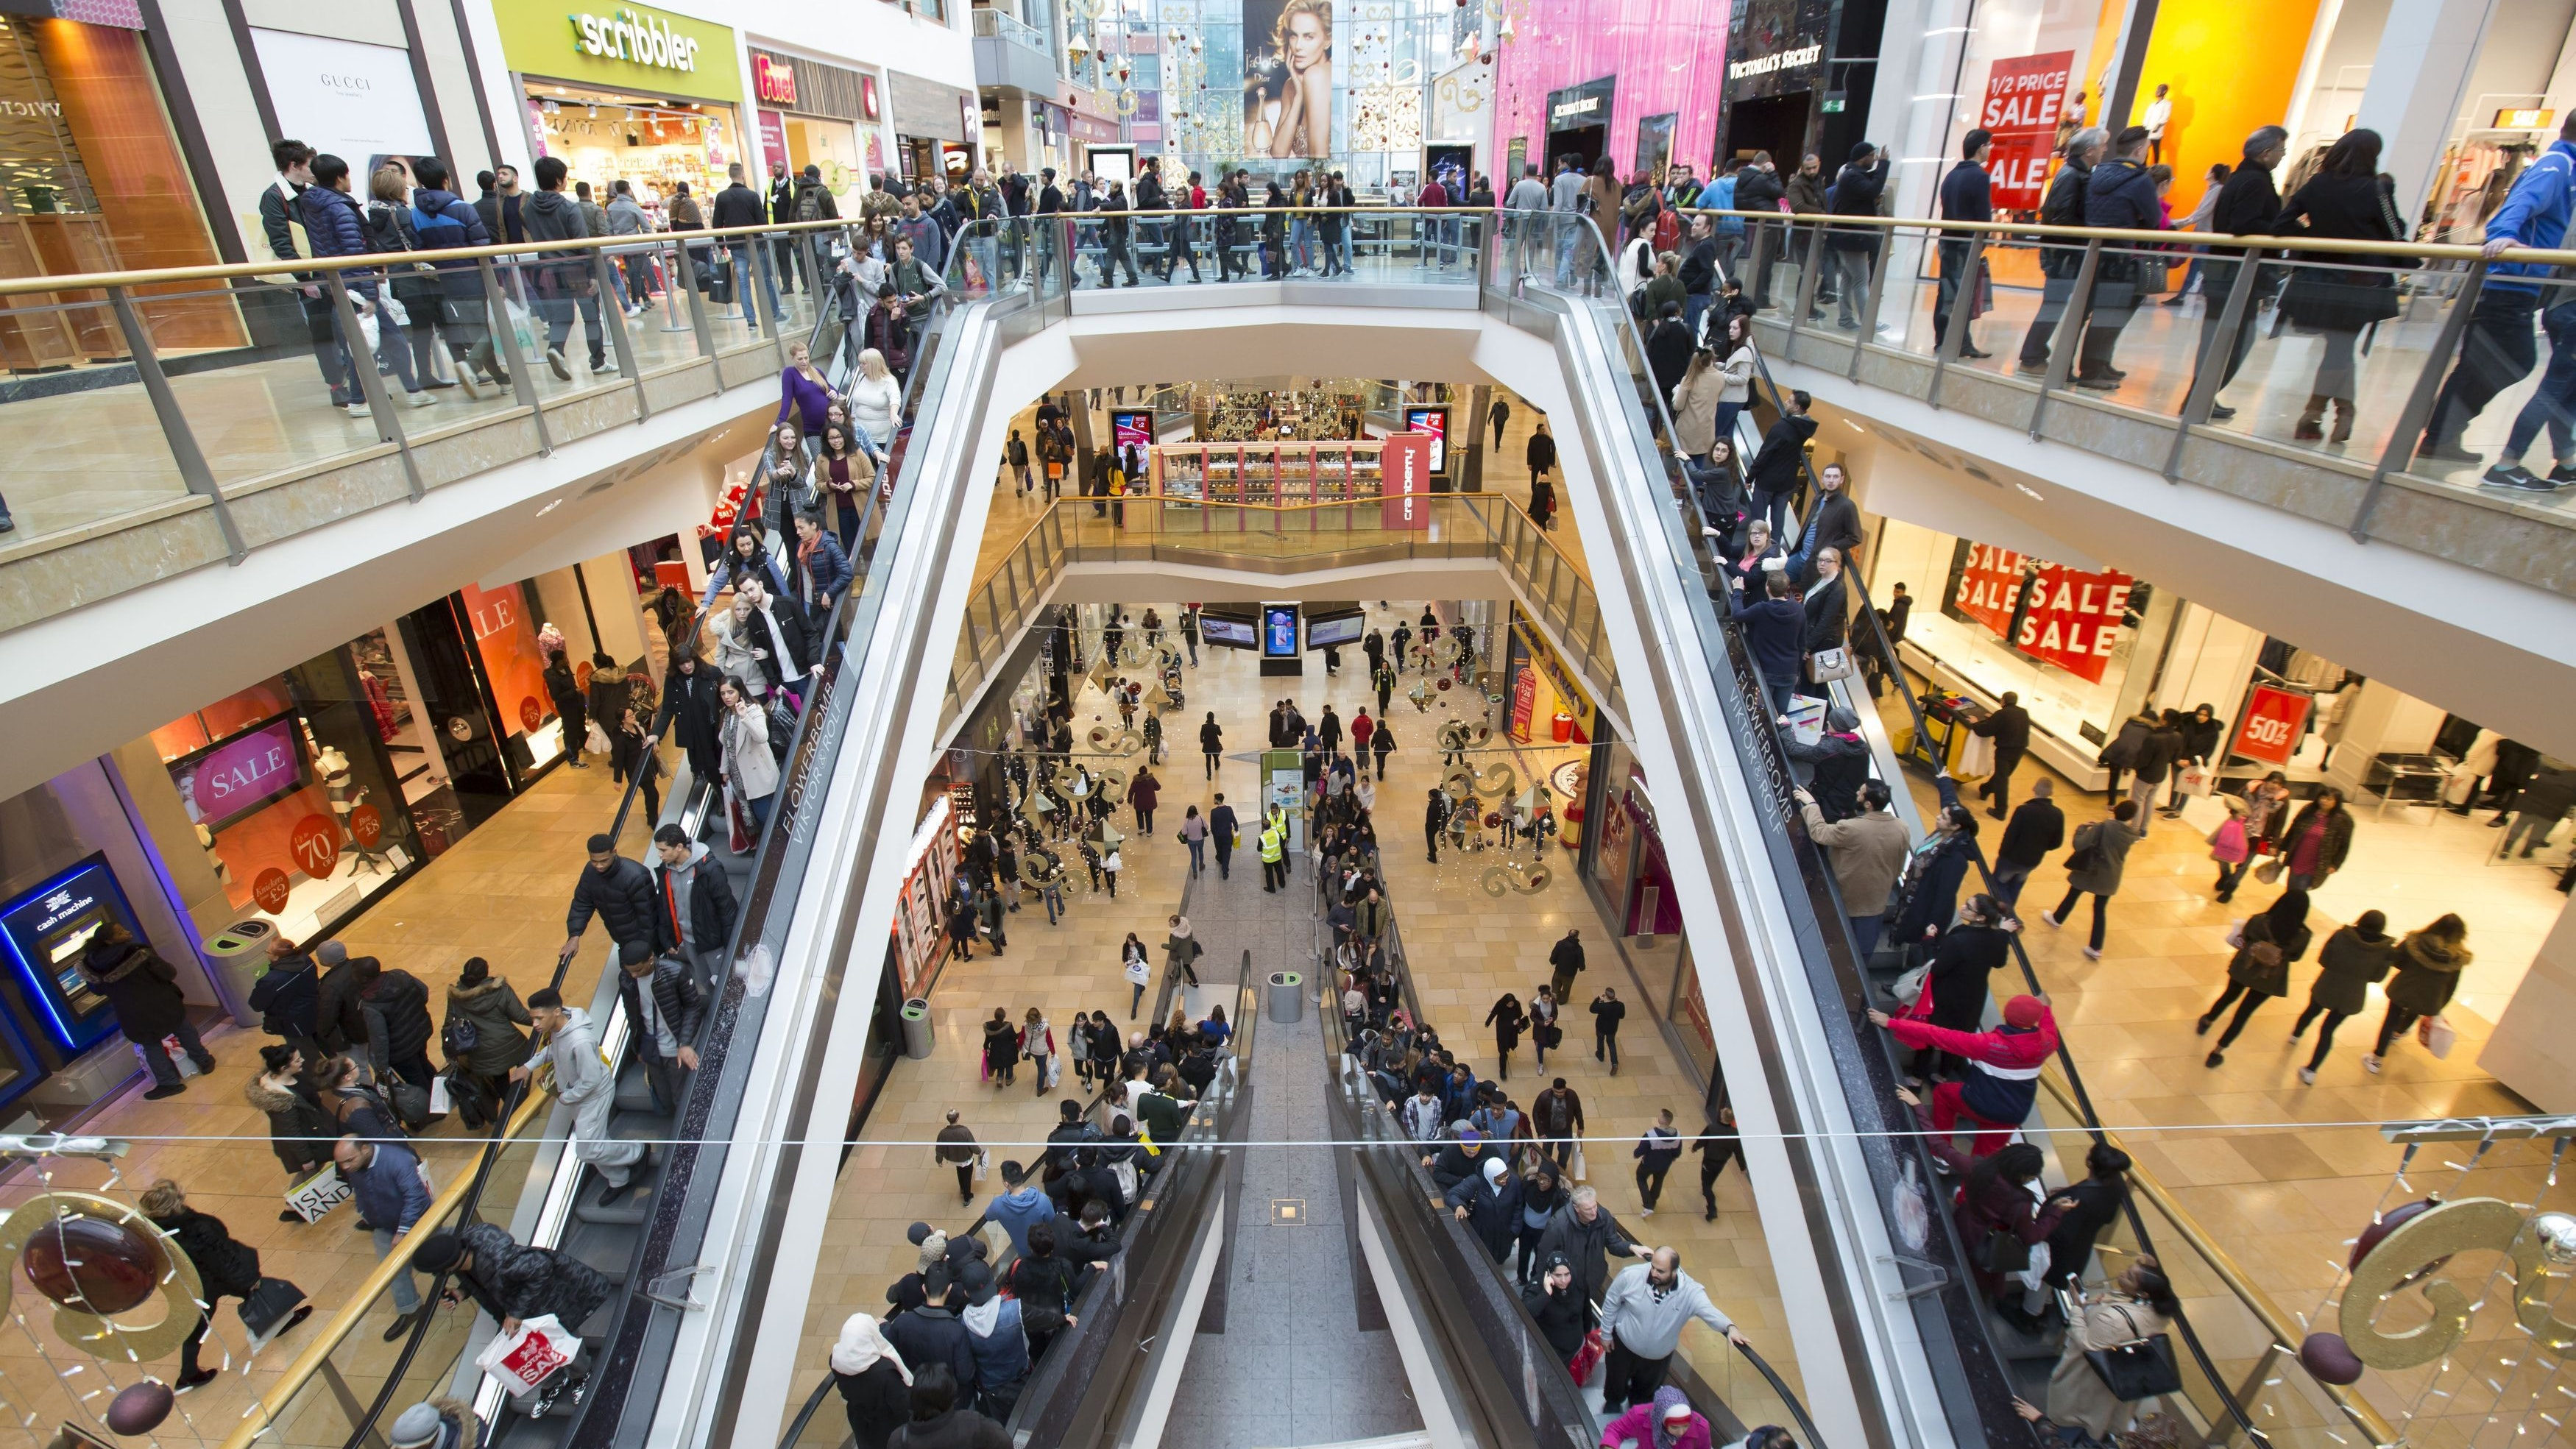 Hammerson rejects Klépierre takeover bid in 'less than 24 hours'